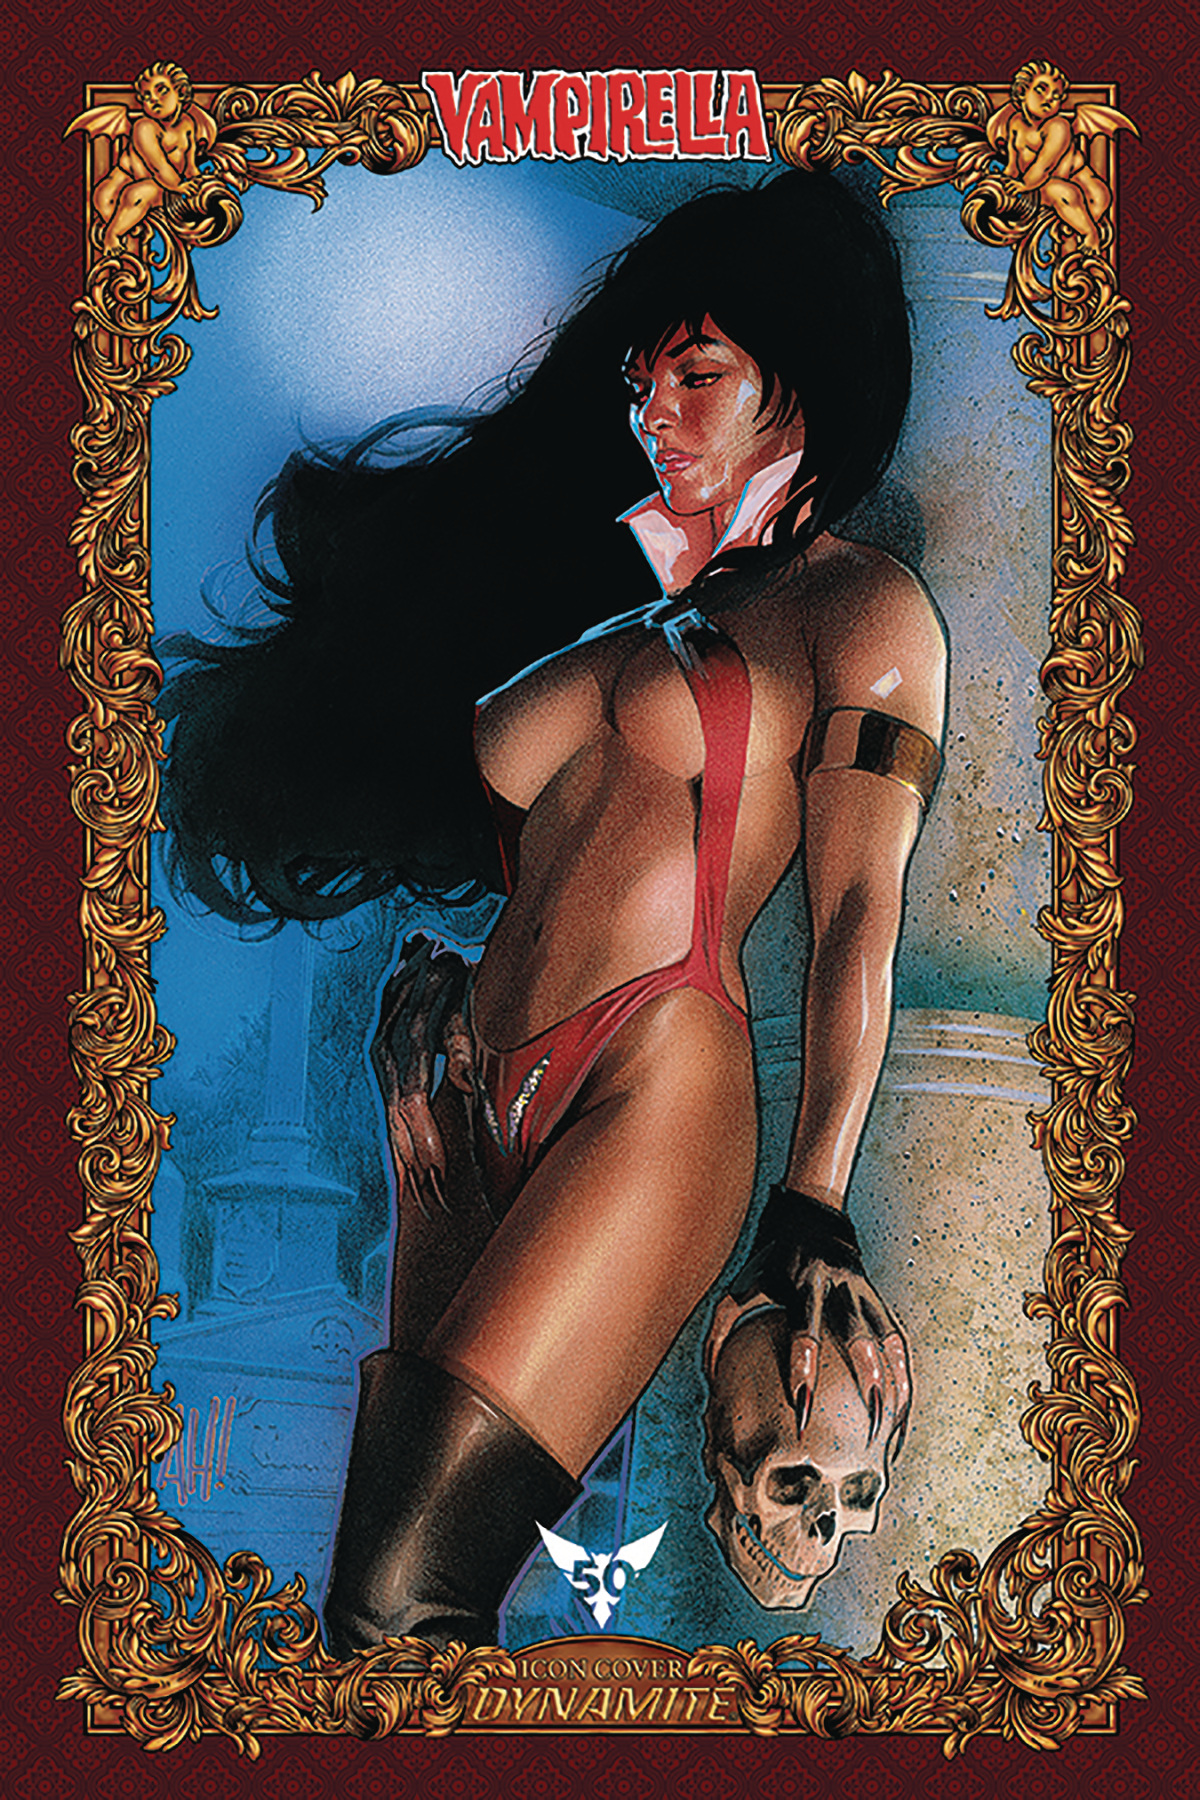 VAMPIRELLA #6 60 COPY HUGHES ICON INCV